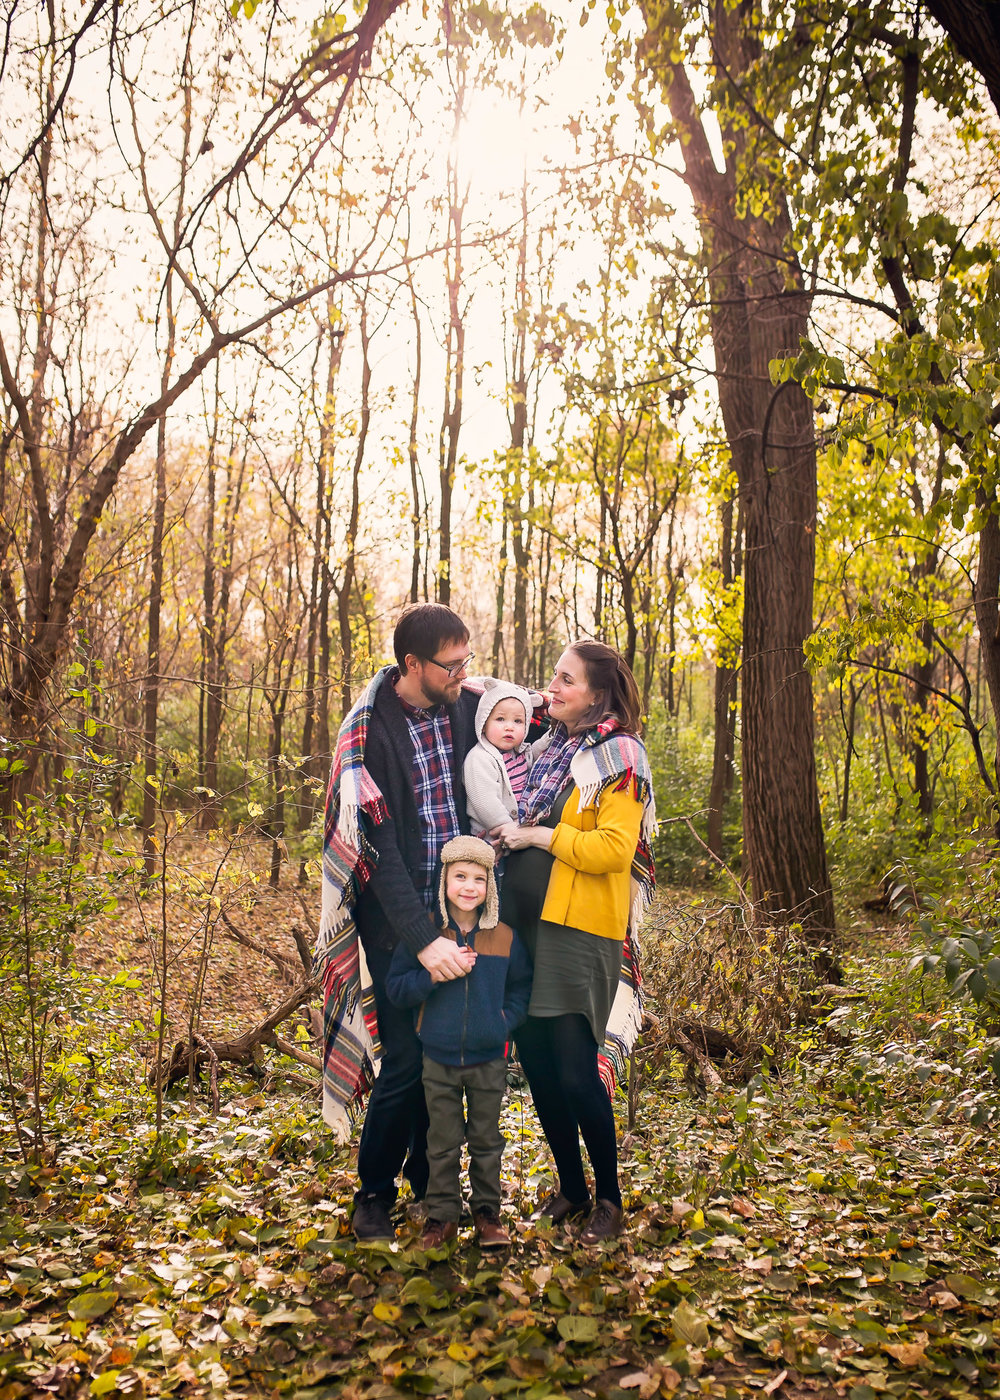 Click on the photo to see more from the Schmidt Family Session!